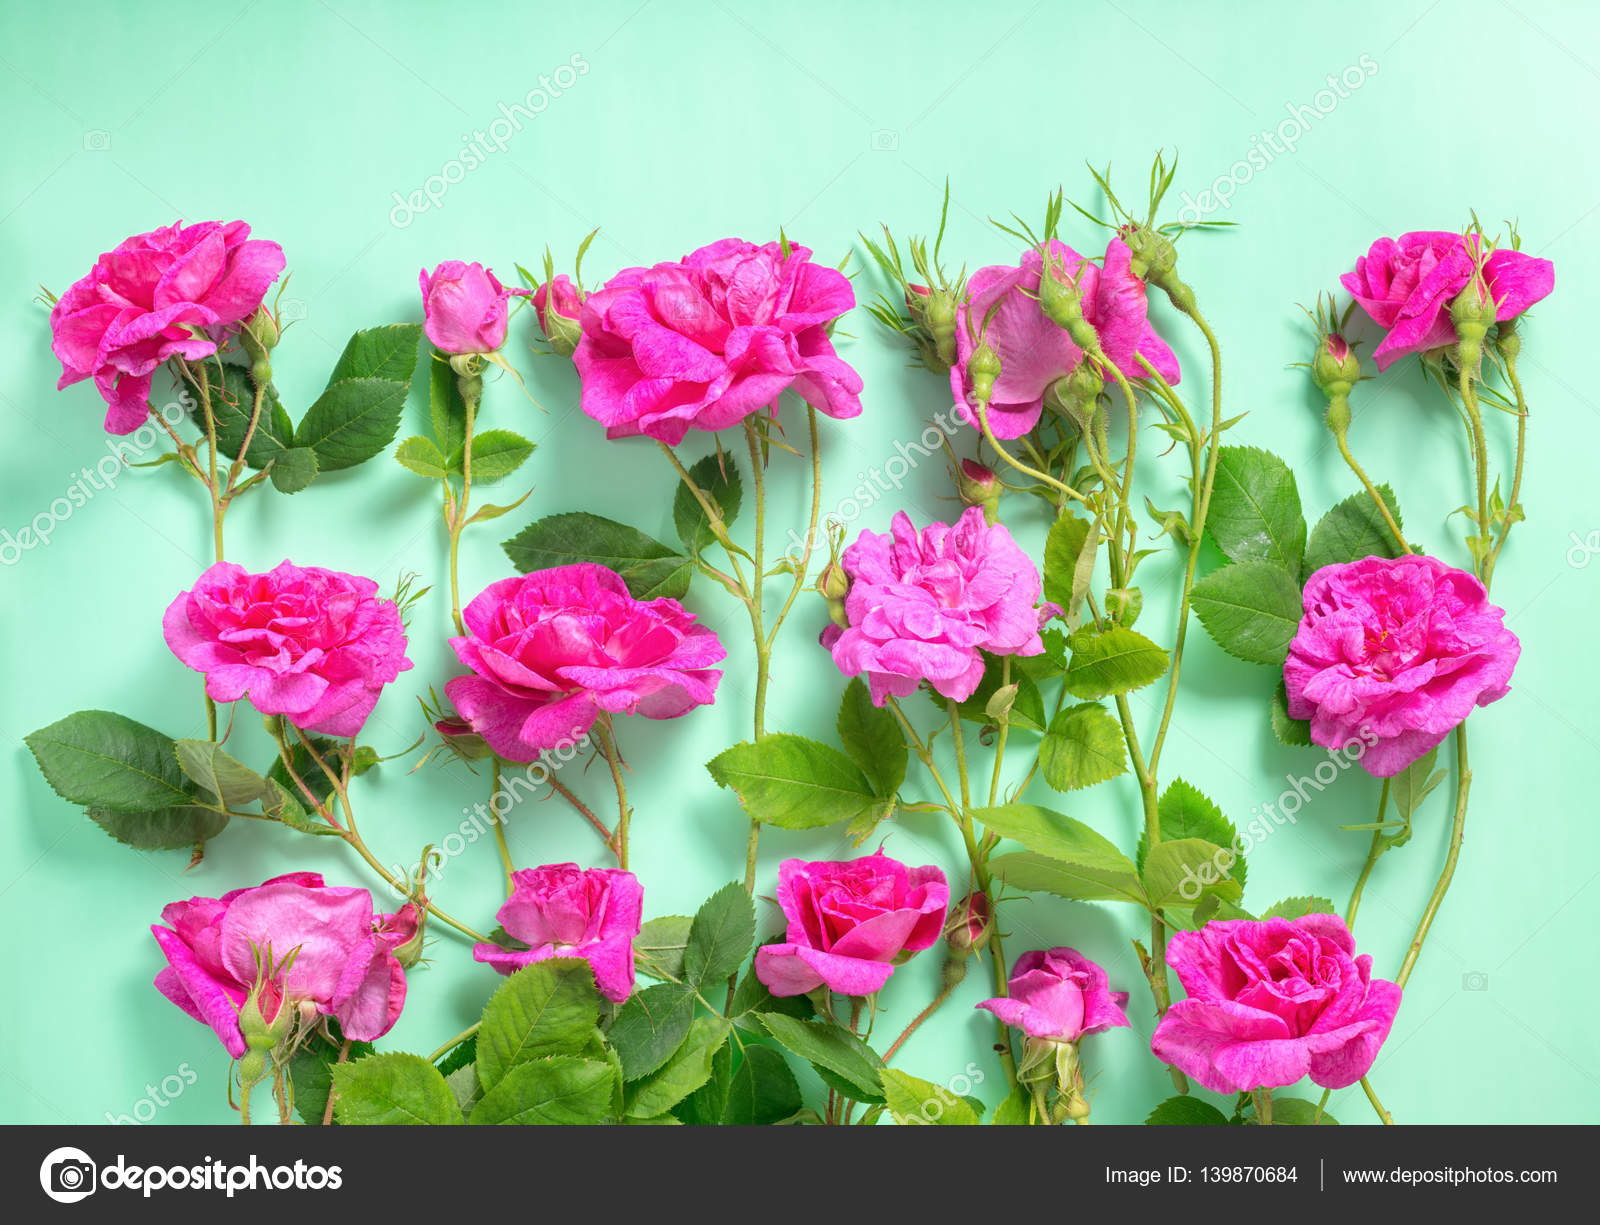 Beautiful romantic pink rose flowers with buds and leaves on gre beautiful romantic pink rose flowers with buds and leaves on gre stock photo izmirmasajfo